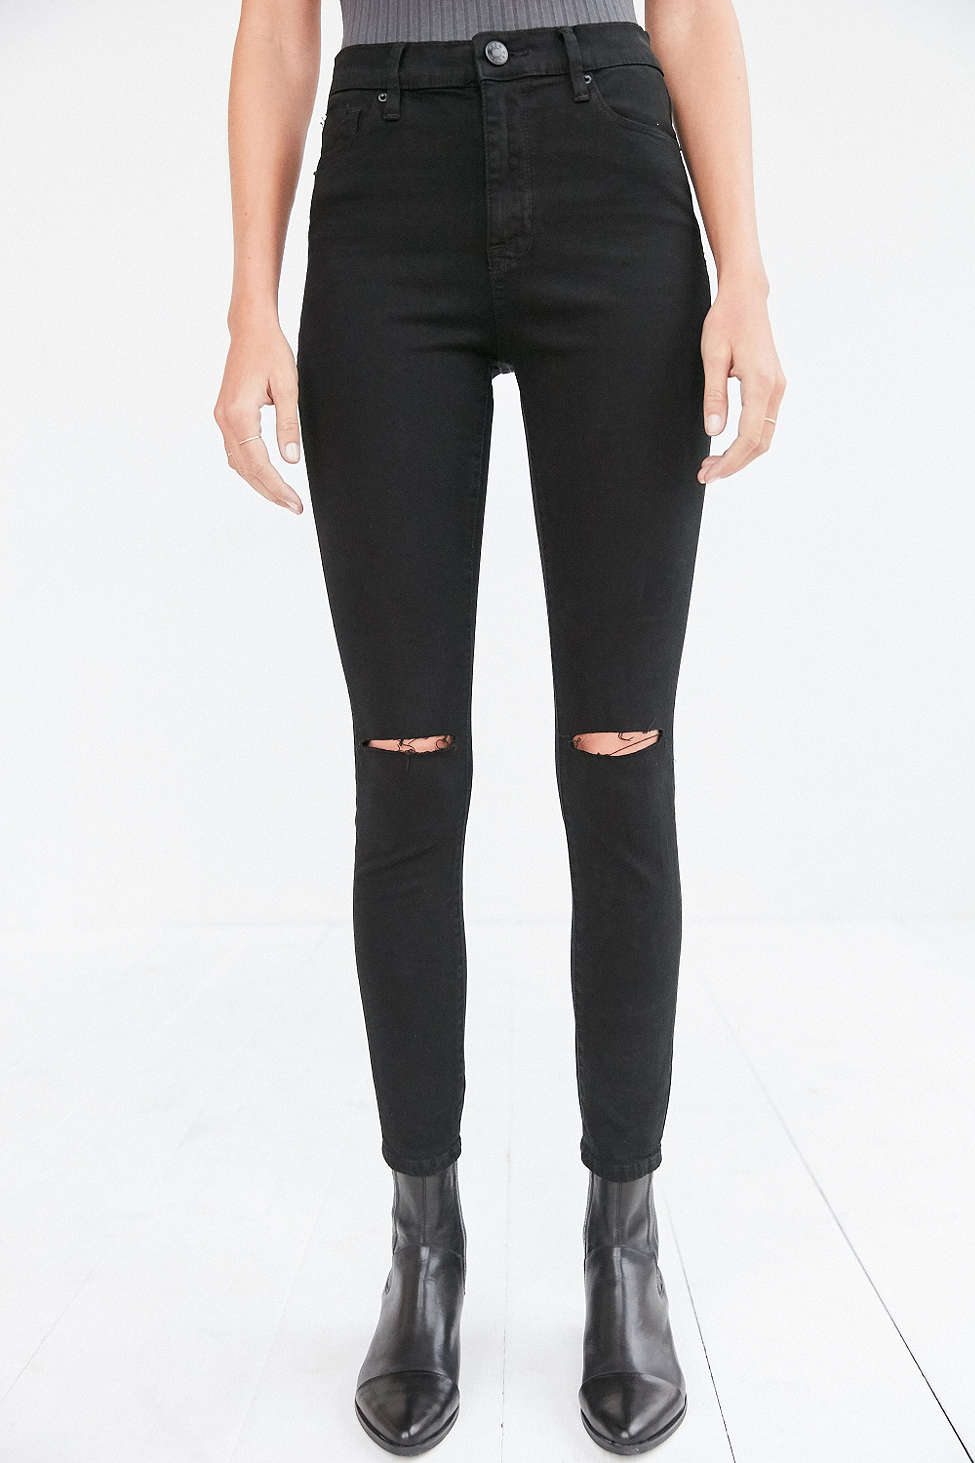 Levi's Ripped Black Skinny Jeans